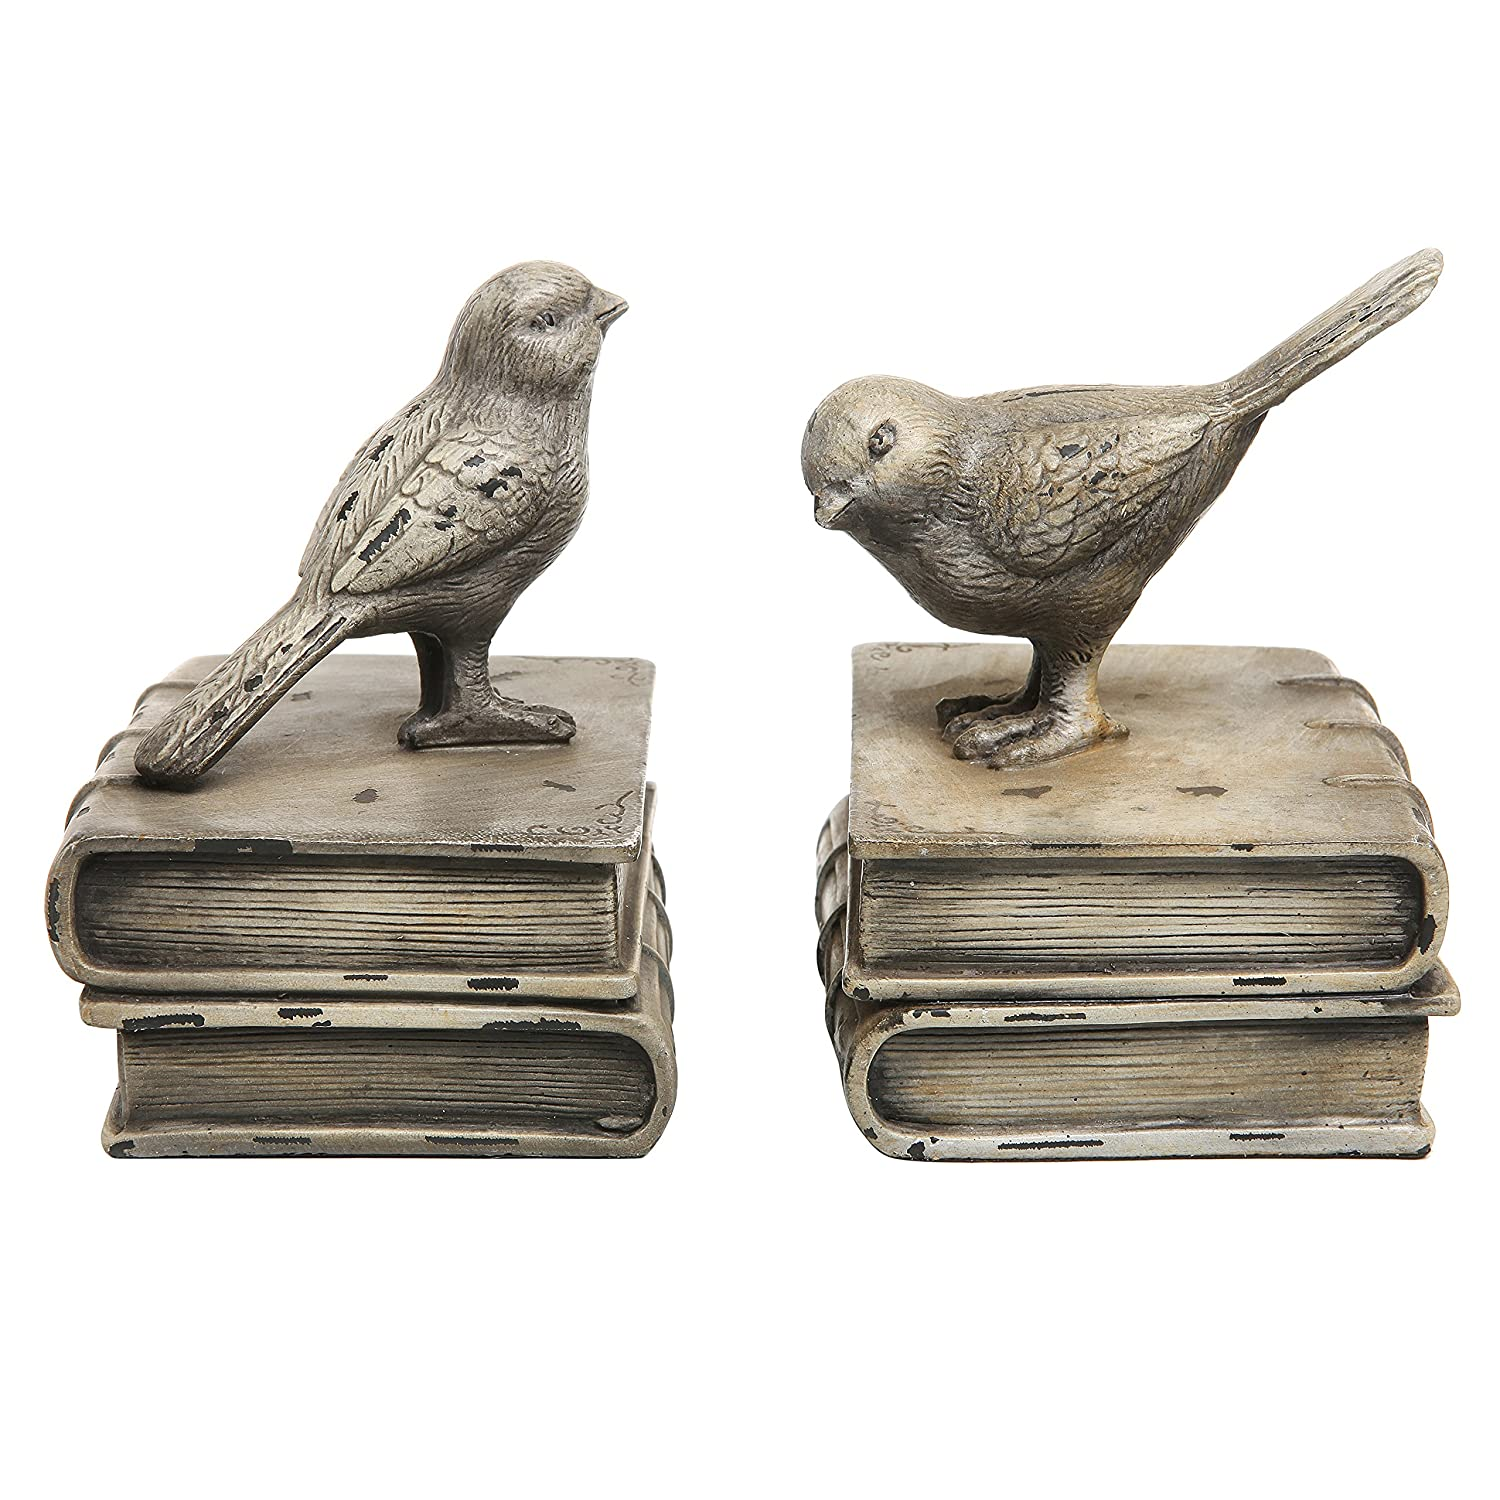 Vintage Style Decorative Birds & Books Design Ceramic Bookshelf Bookends / Paper Weights - MyGift® Home